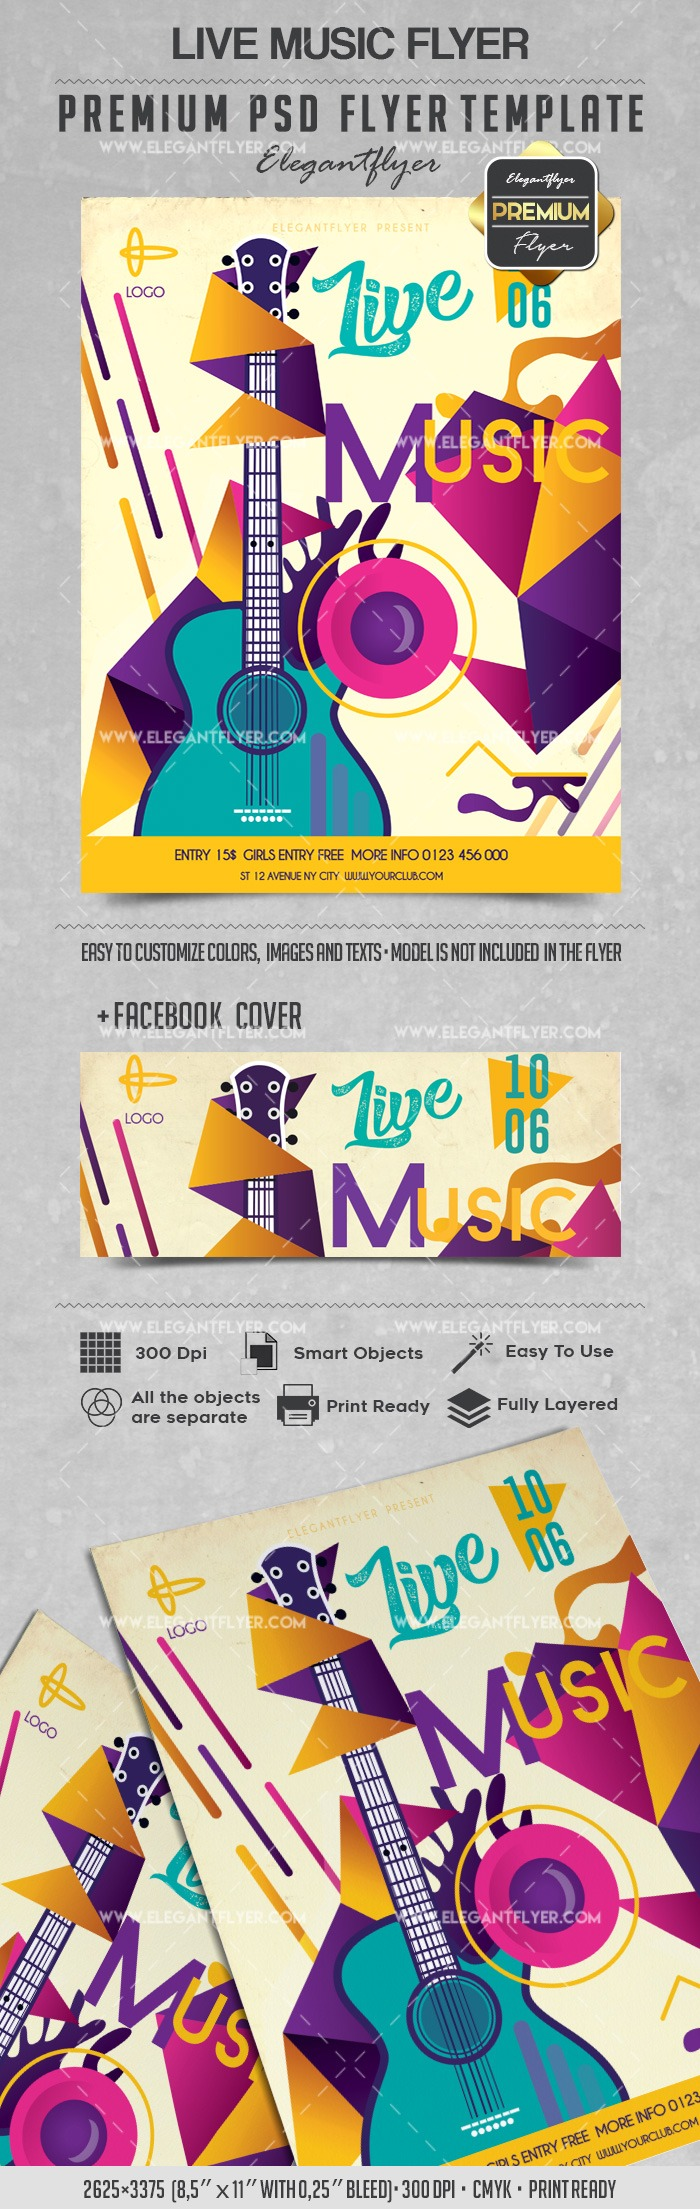 Abstract Live Music Flyer Template